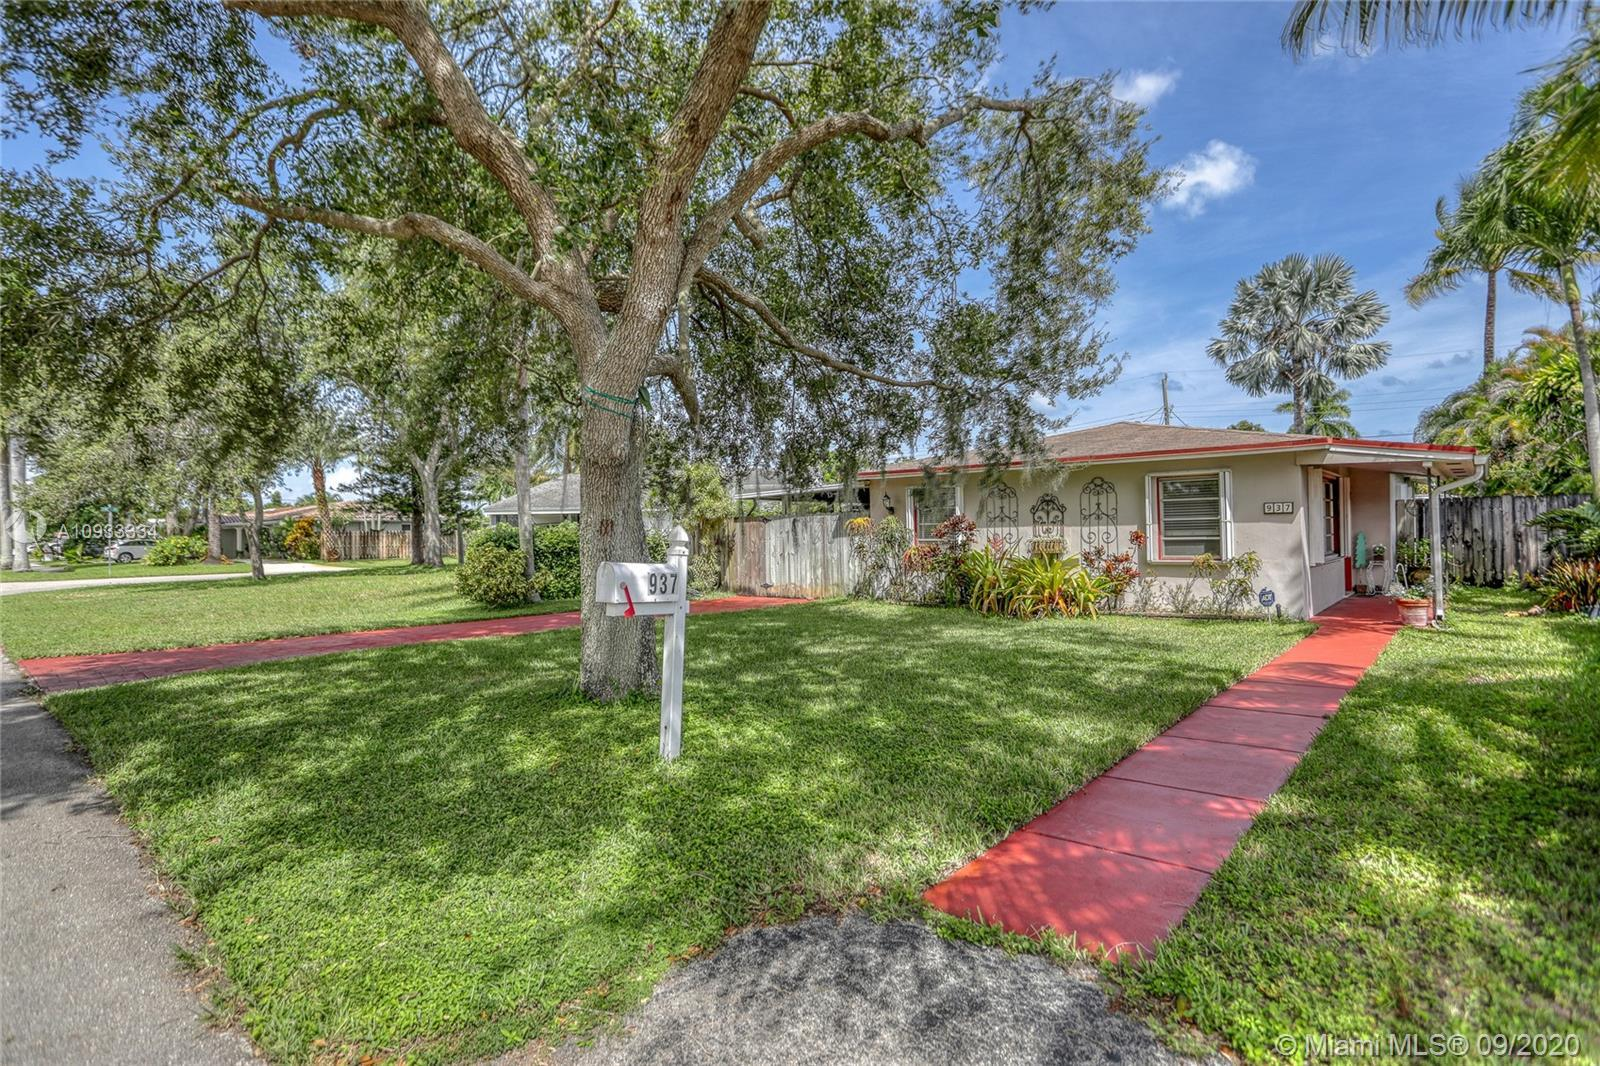 This is HOME!!! And even better you are minutes to the beach! This adorable and cozy home has such c